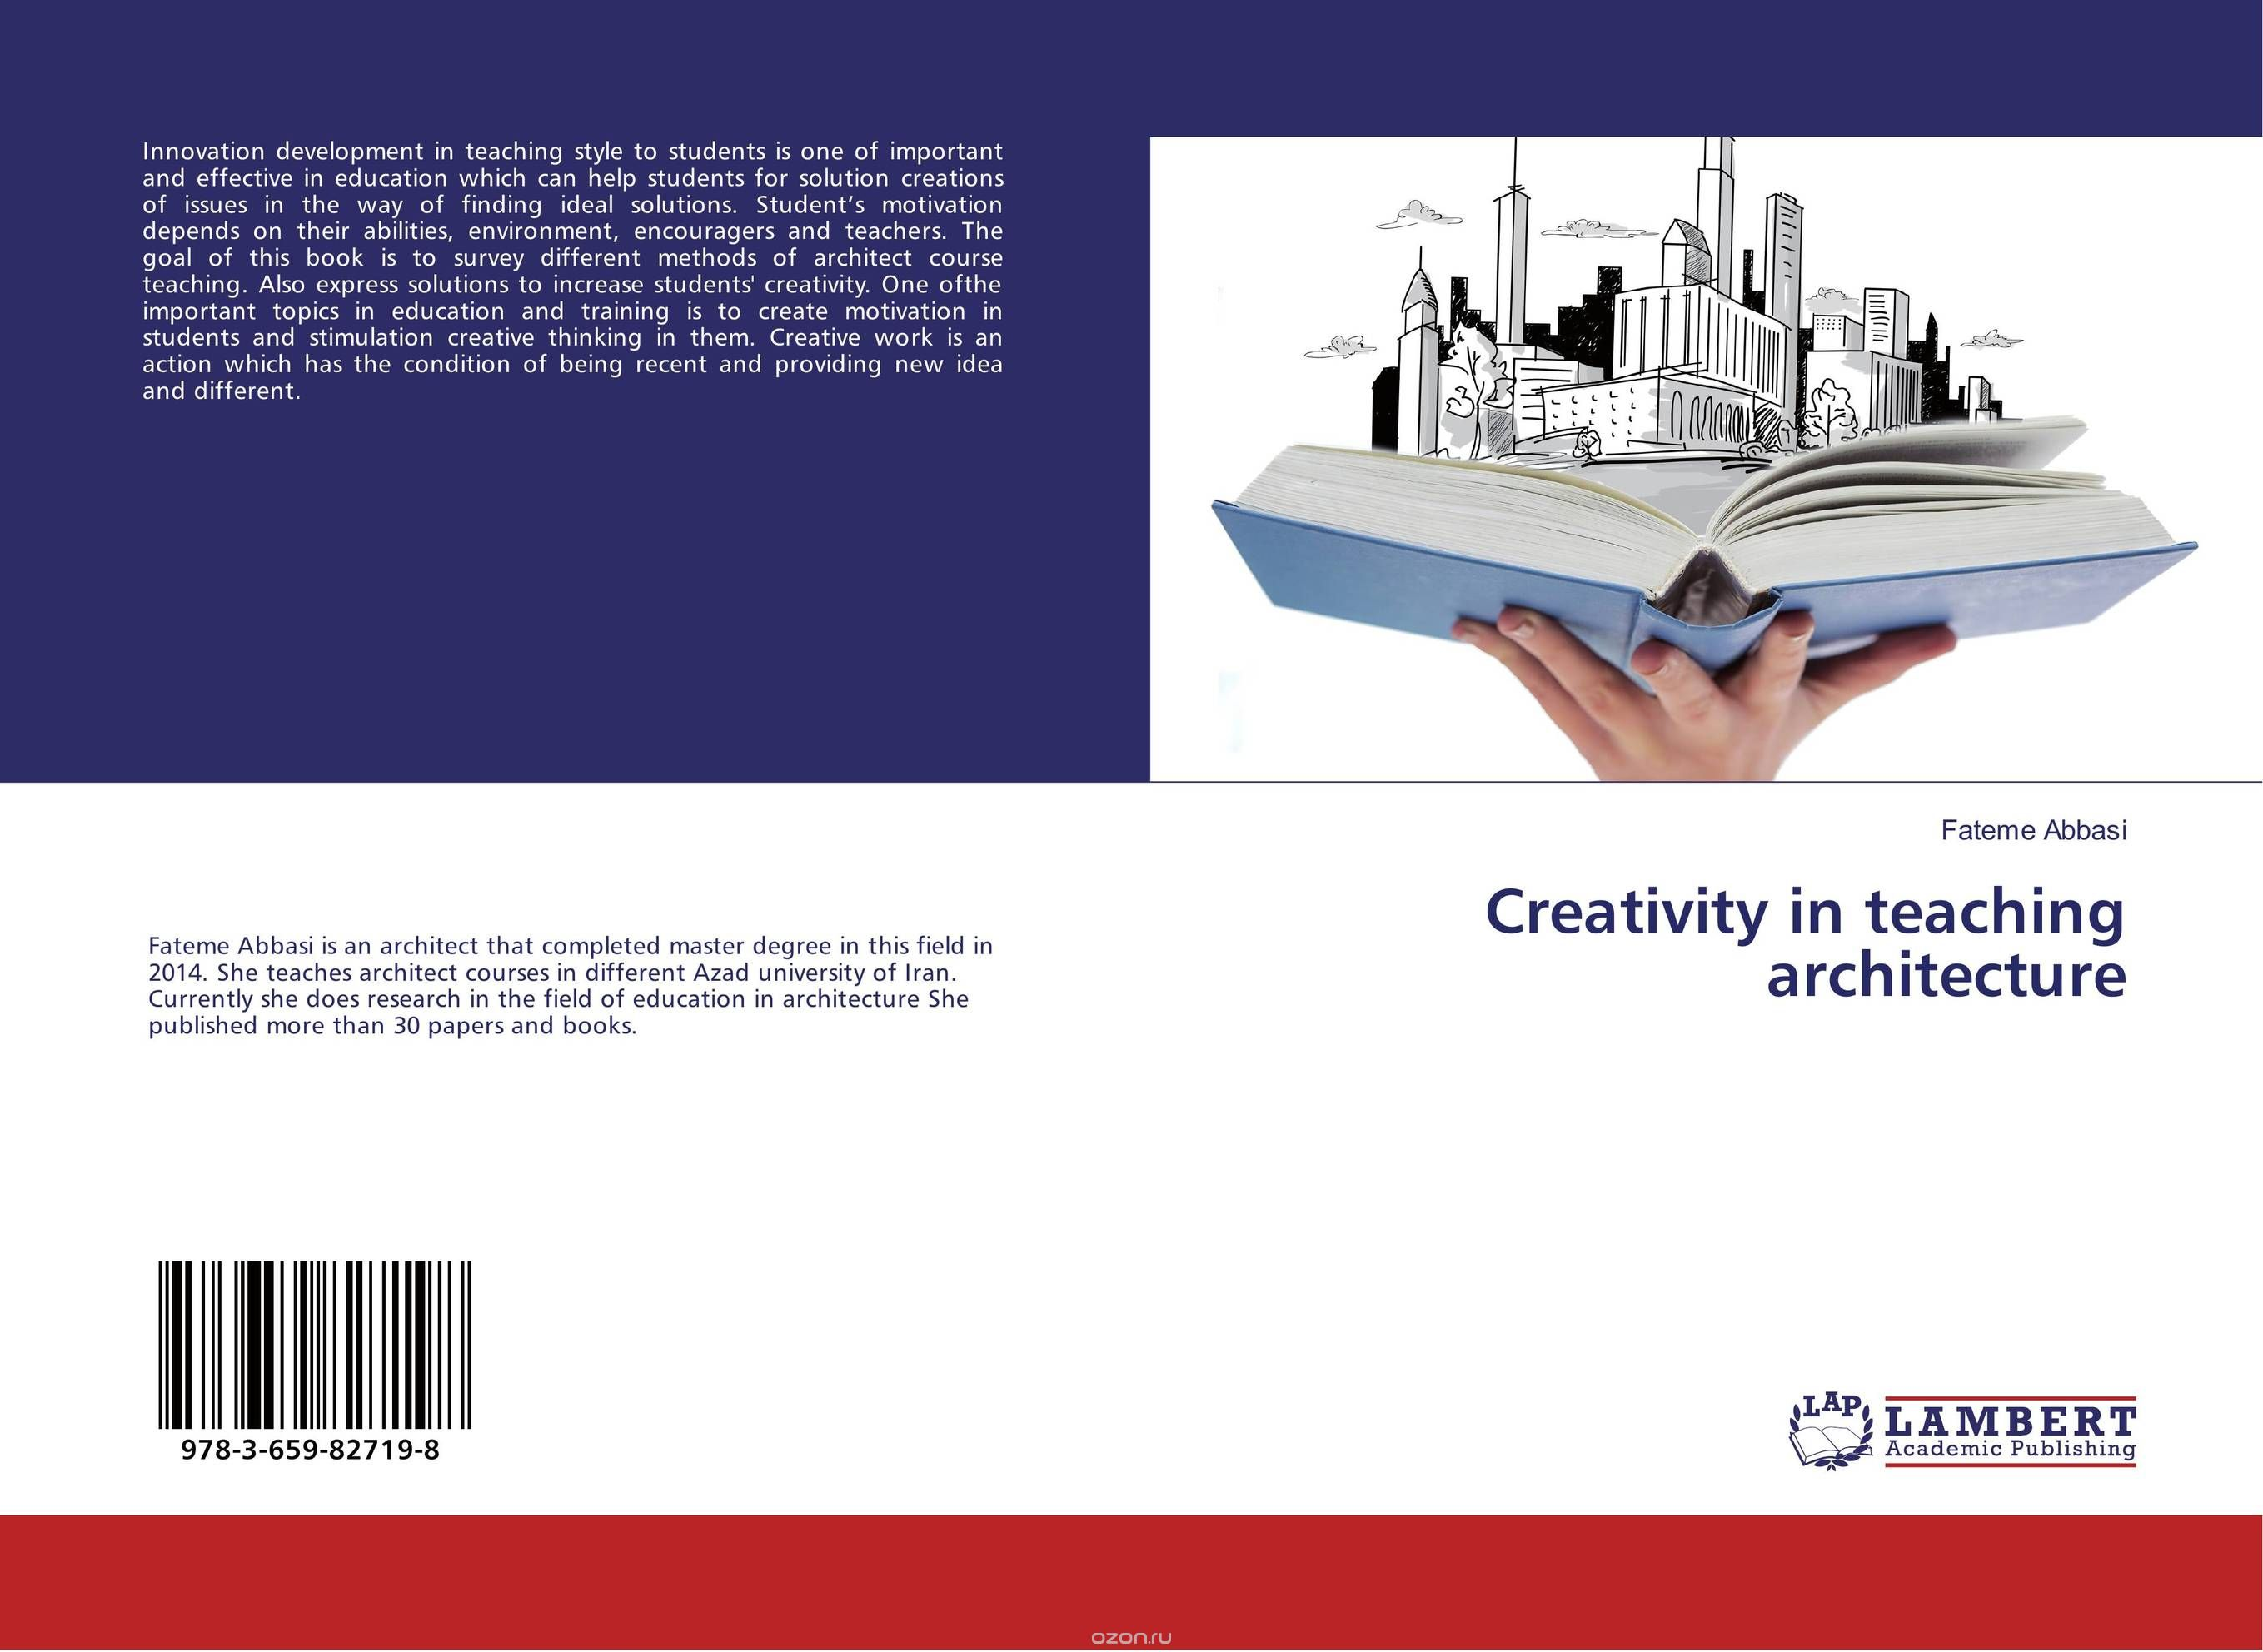 Creativity in teaching architecture